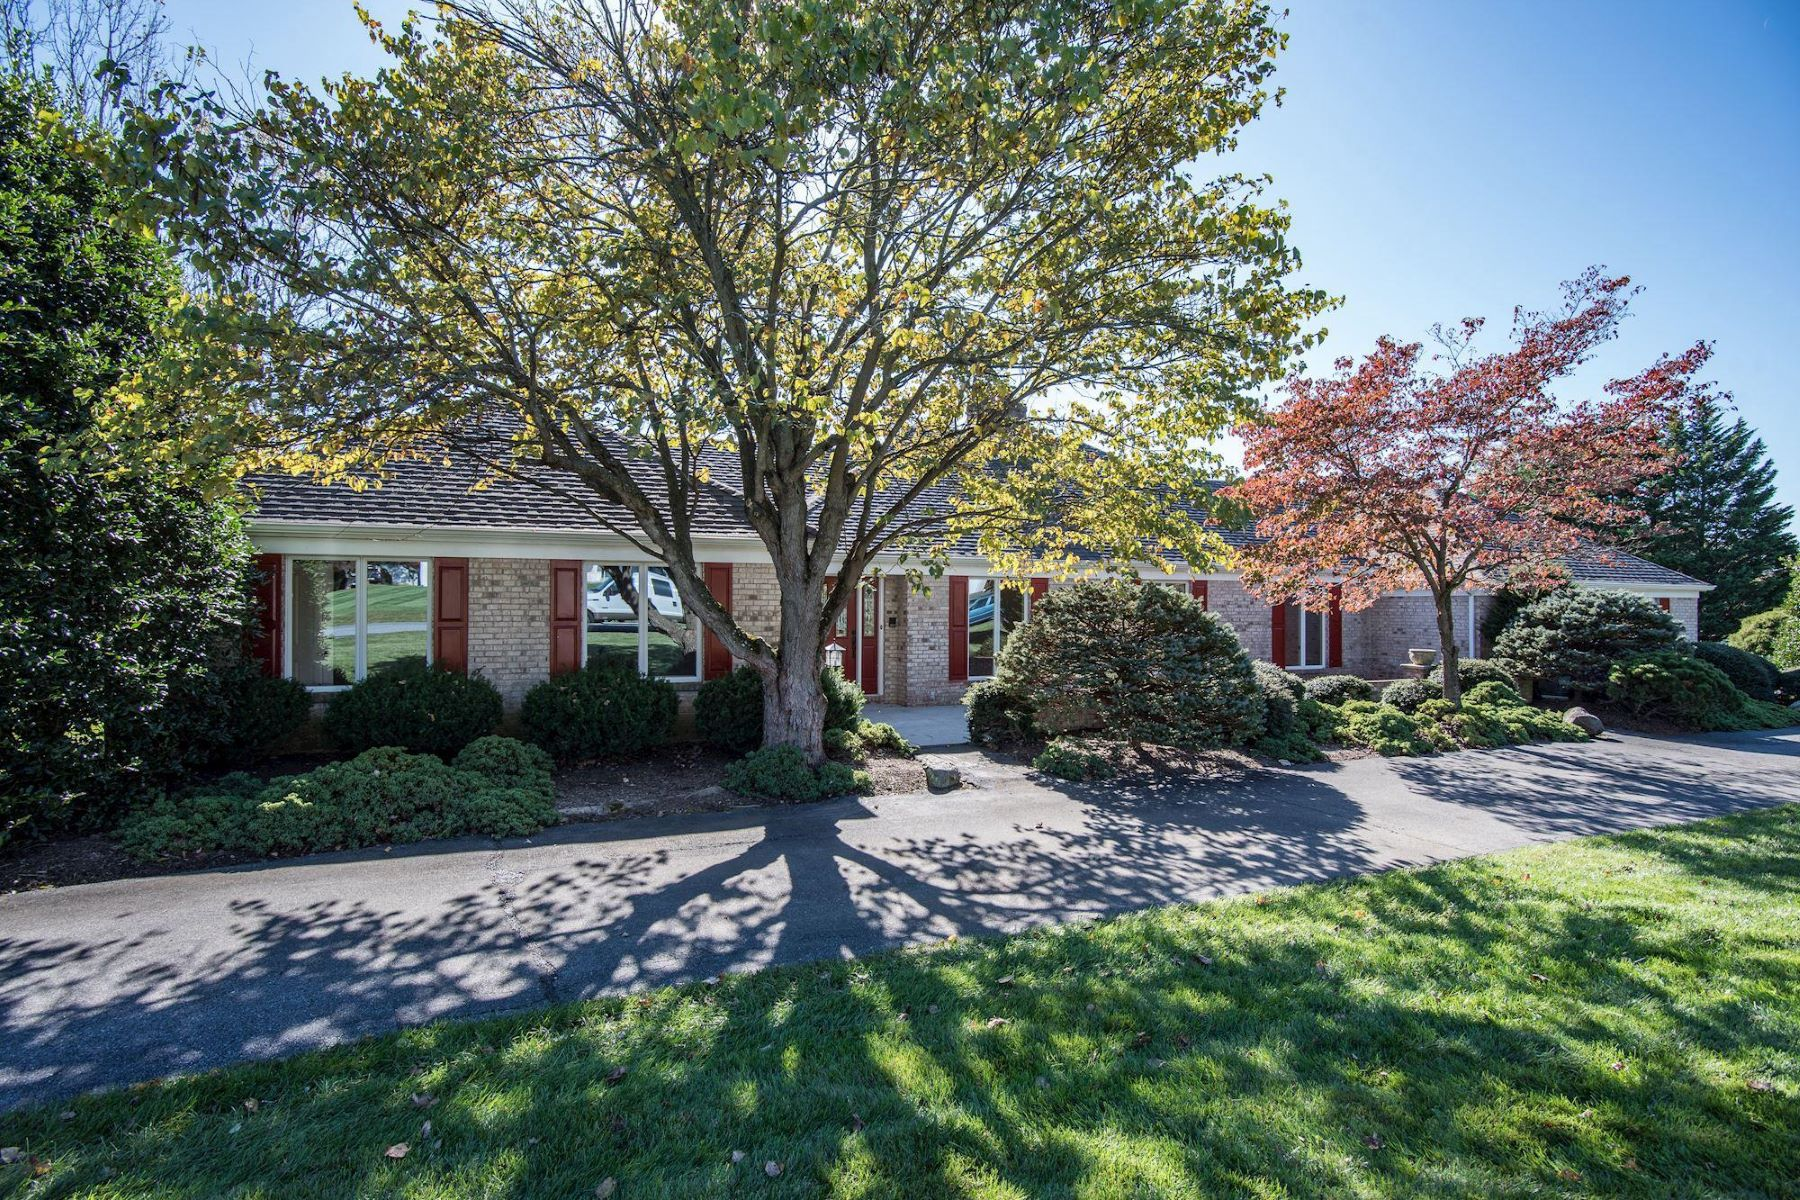 Single Family Homes for Sale at Expansive One-Level Living 9832 Log House Ct Gaithersburg, Maryland 20882 United States